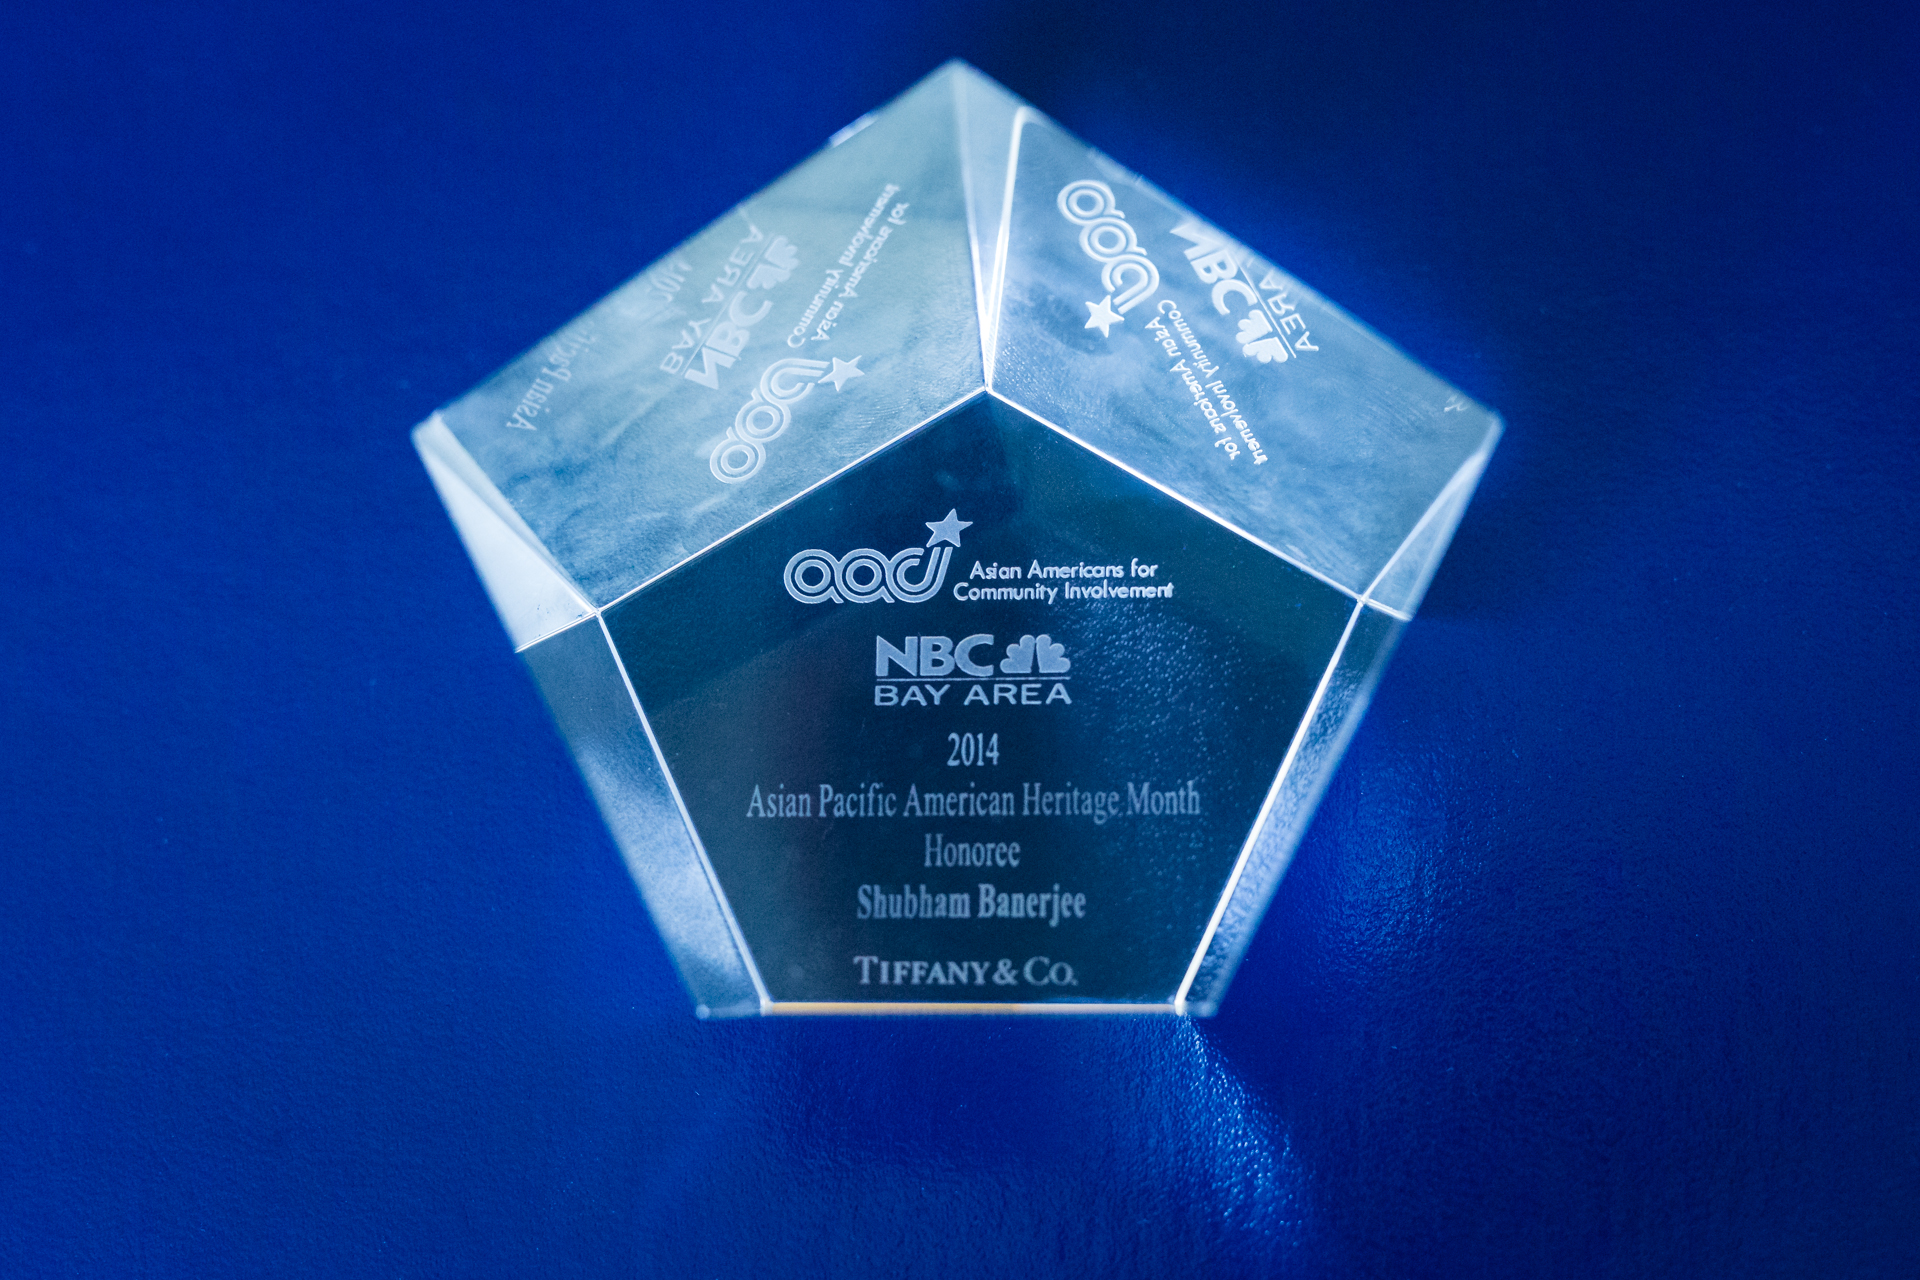 a5c10da1ec File:Shubham Banerjee - 2014 Asian Pacific American Heritage Month Honoree  from AACI - NBC